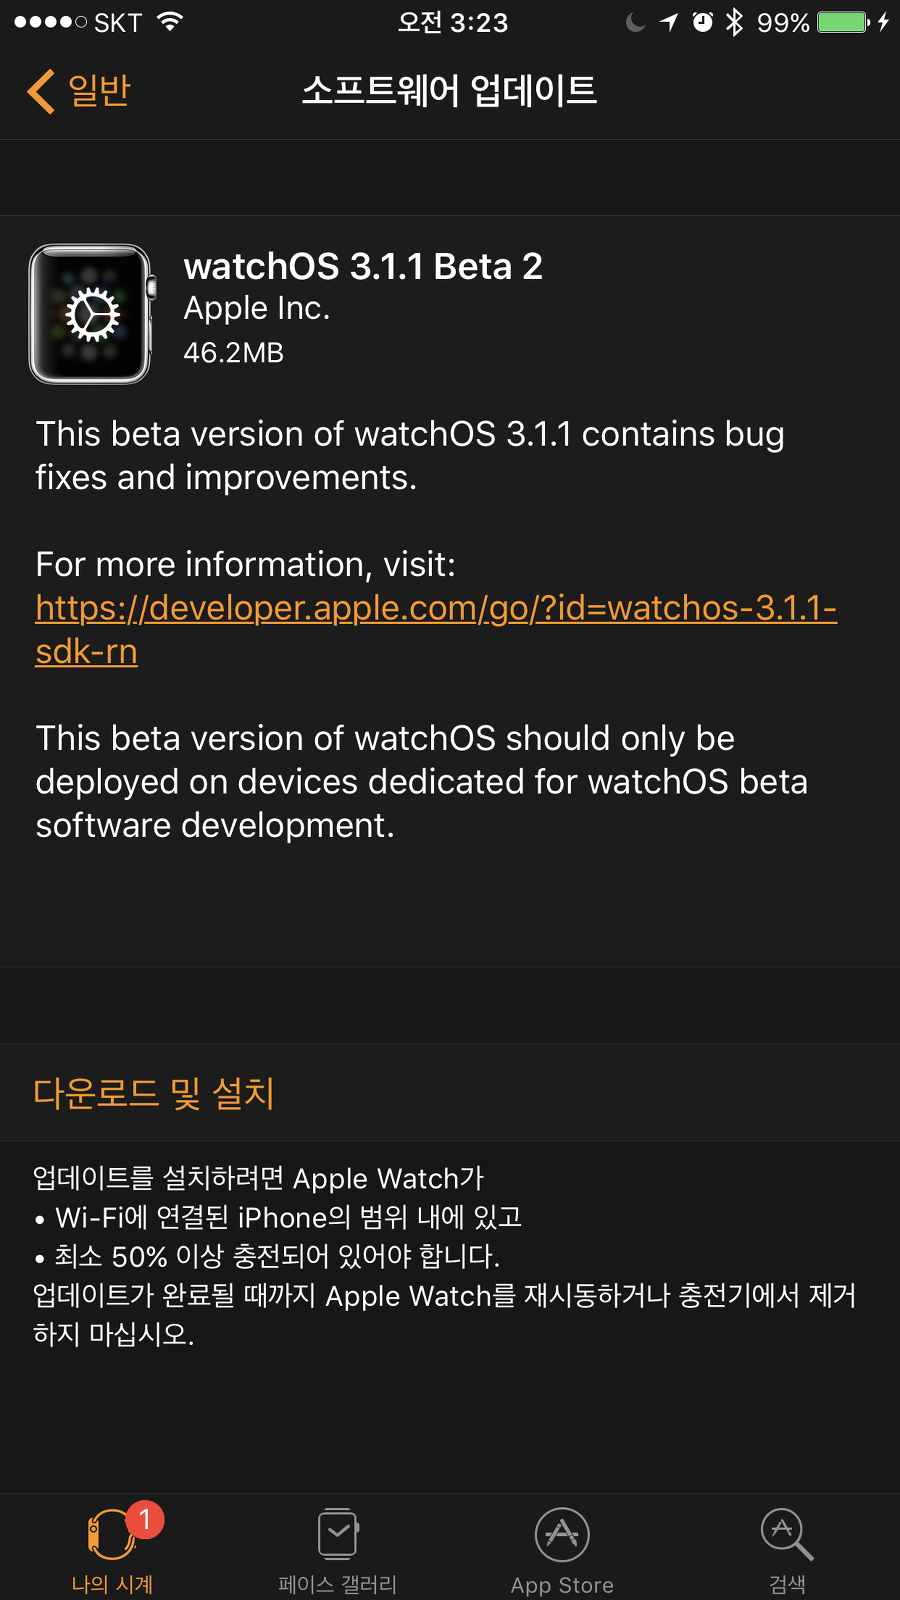 watchos3.1.1 beta2